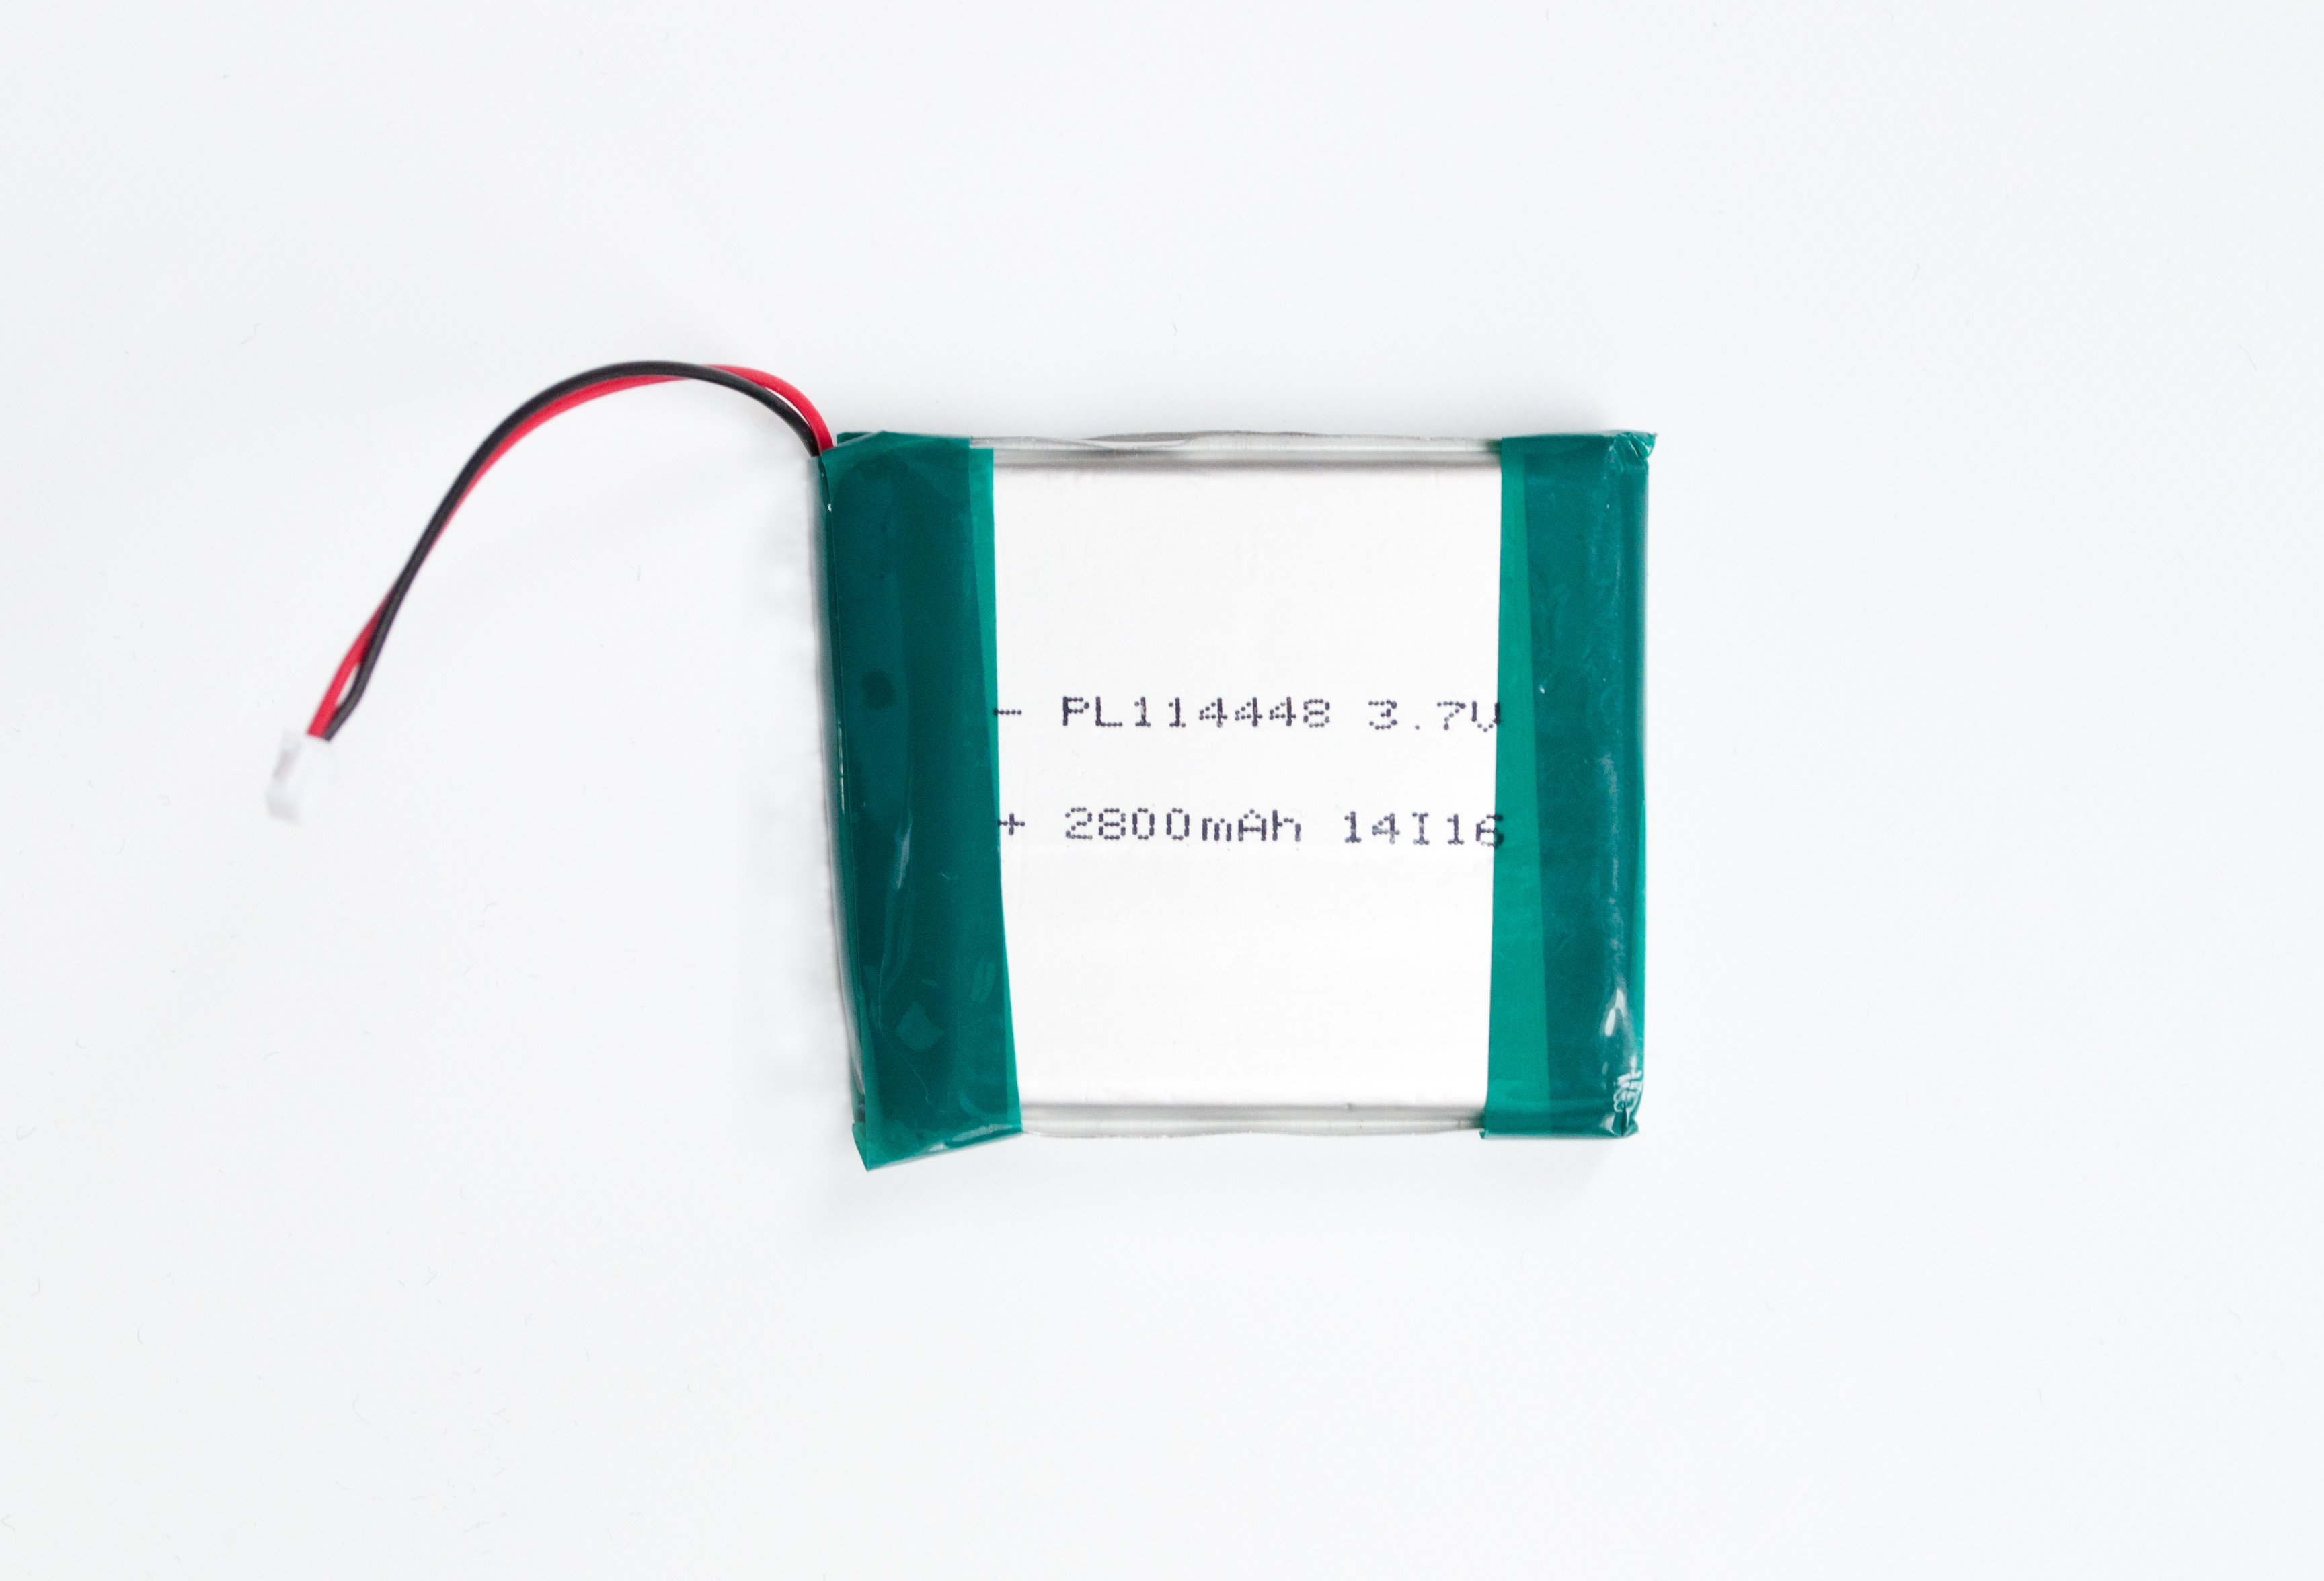 PatrolEyes HD Replacement Battery for SC-DV1 and SC-DV1-XL